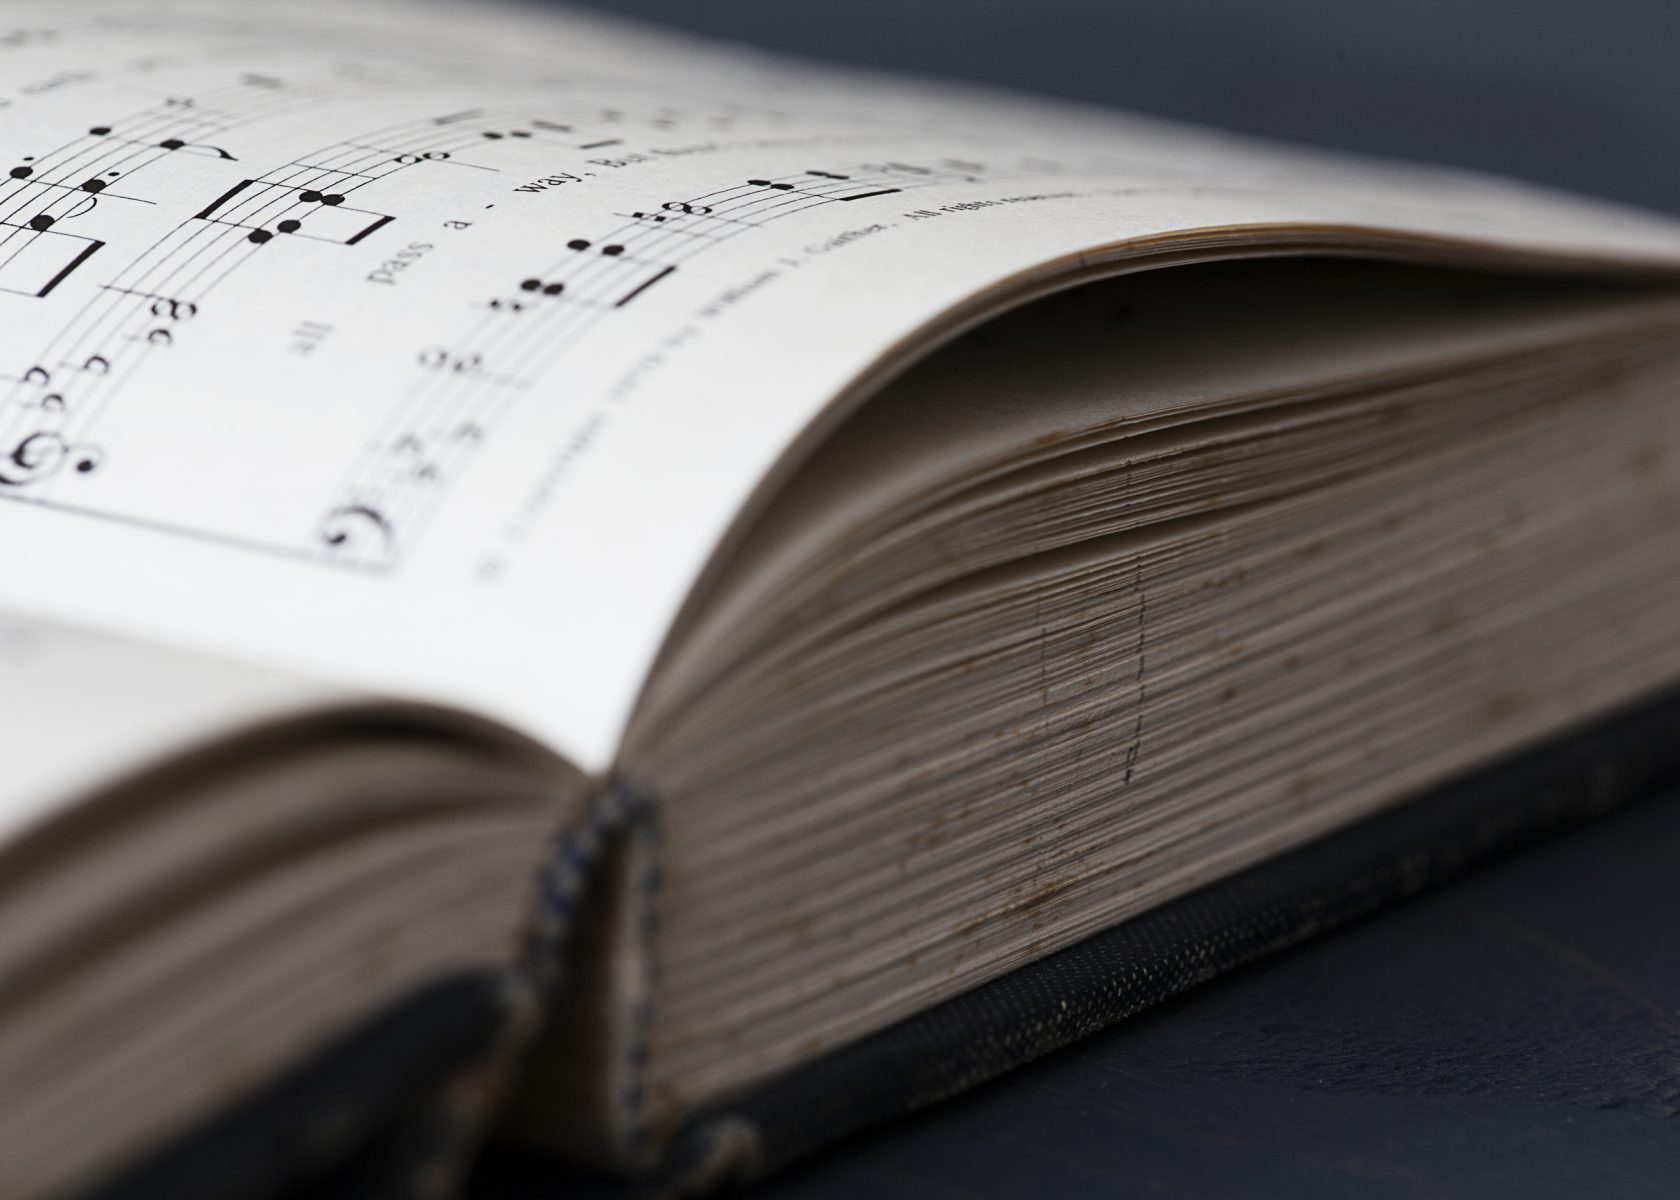 Singing the Antiphons (Part II): A New Discovery